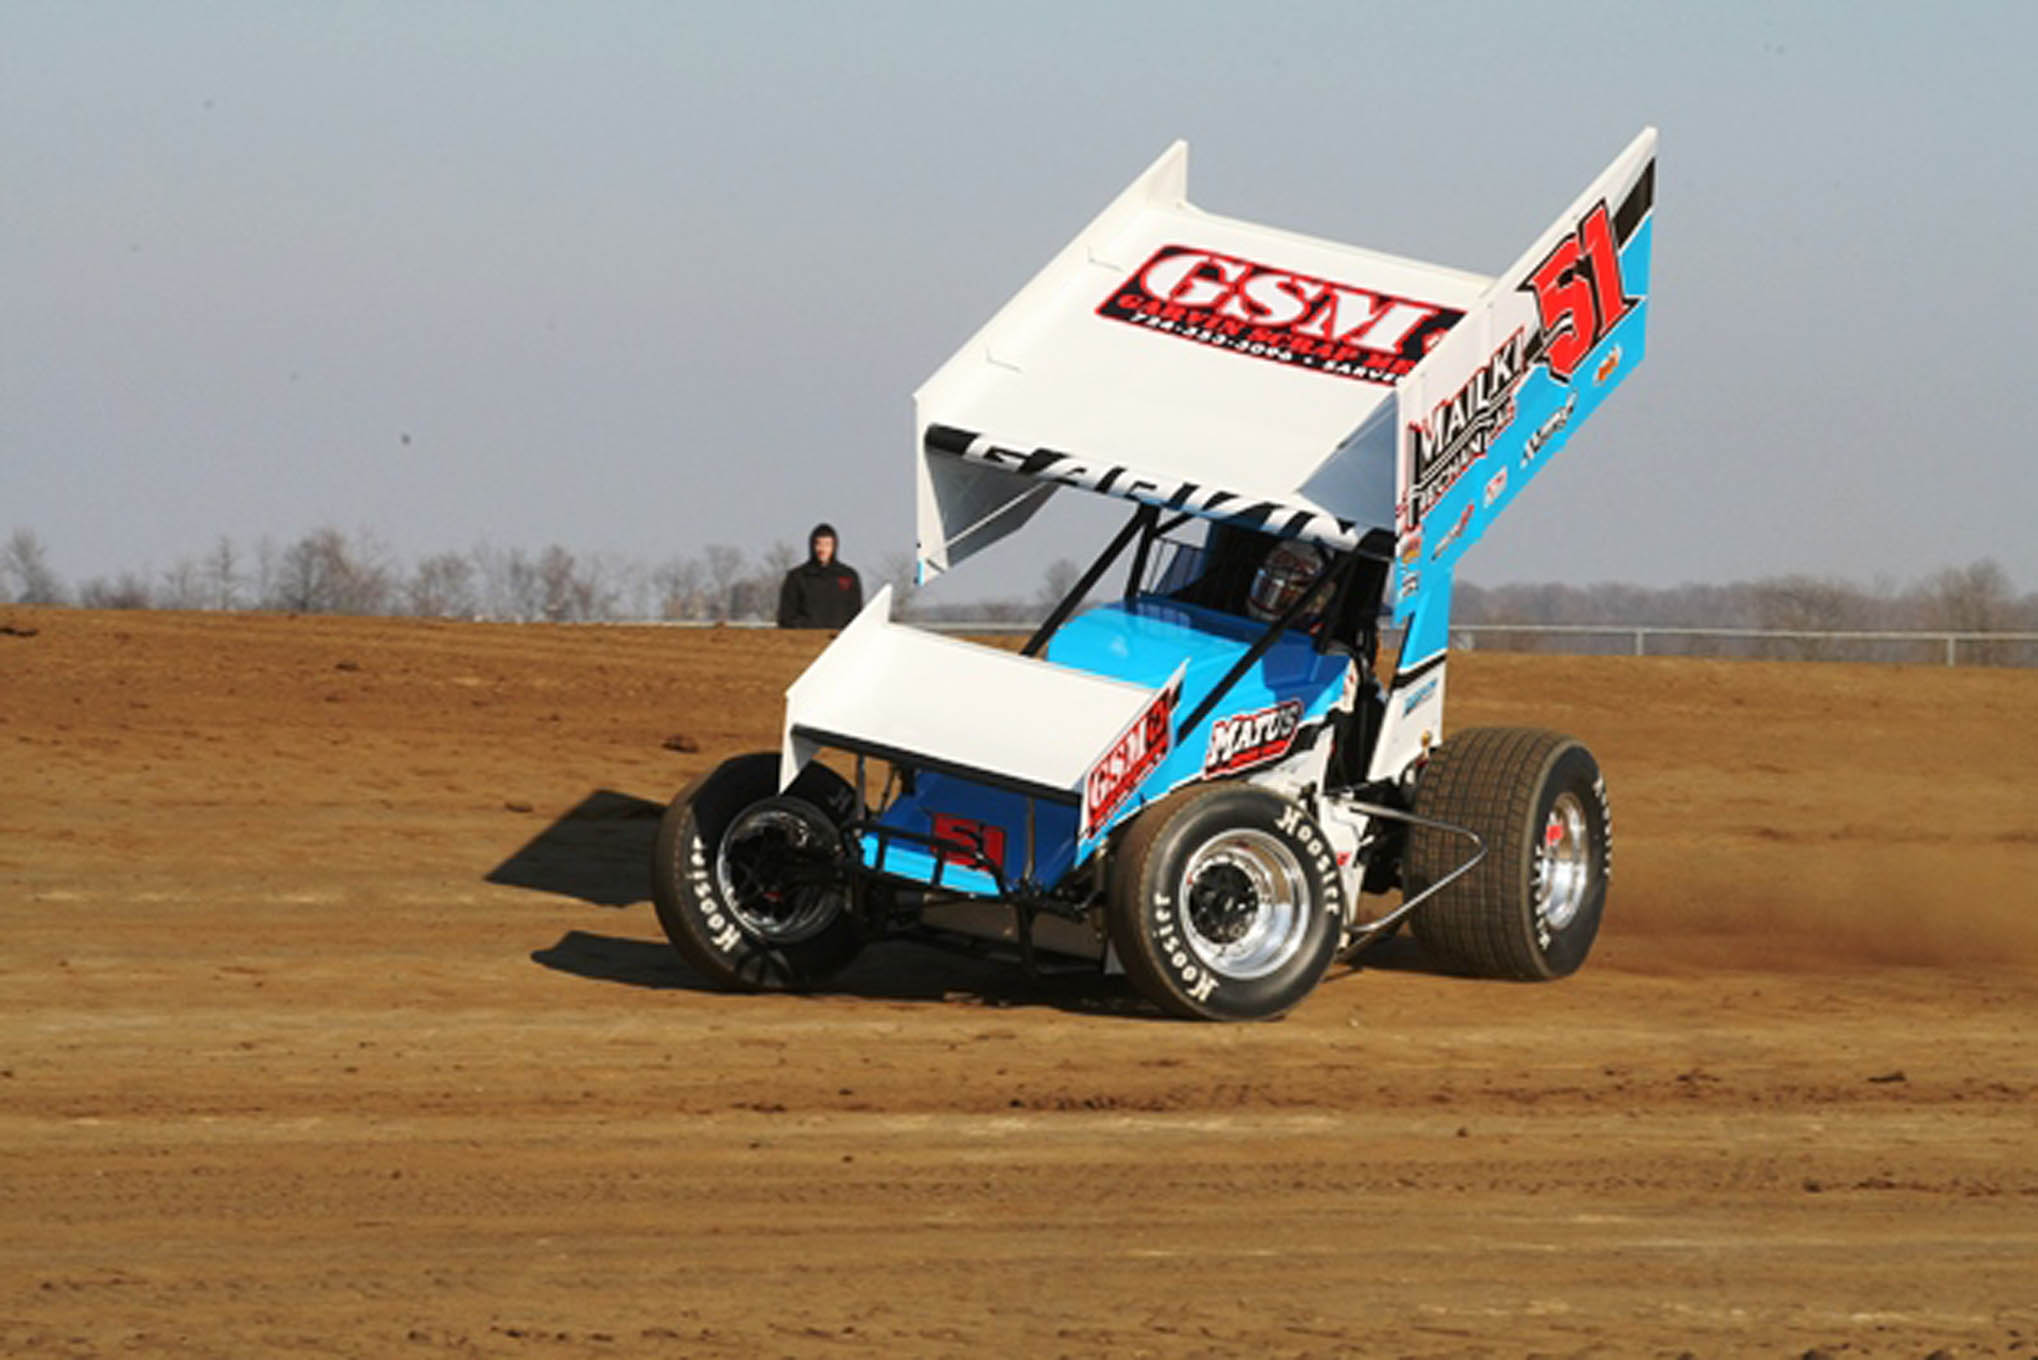 Johnny Garvin slings the mud on his qualifying lap.